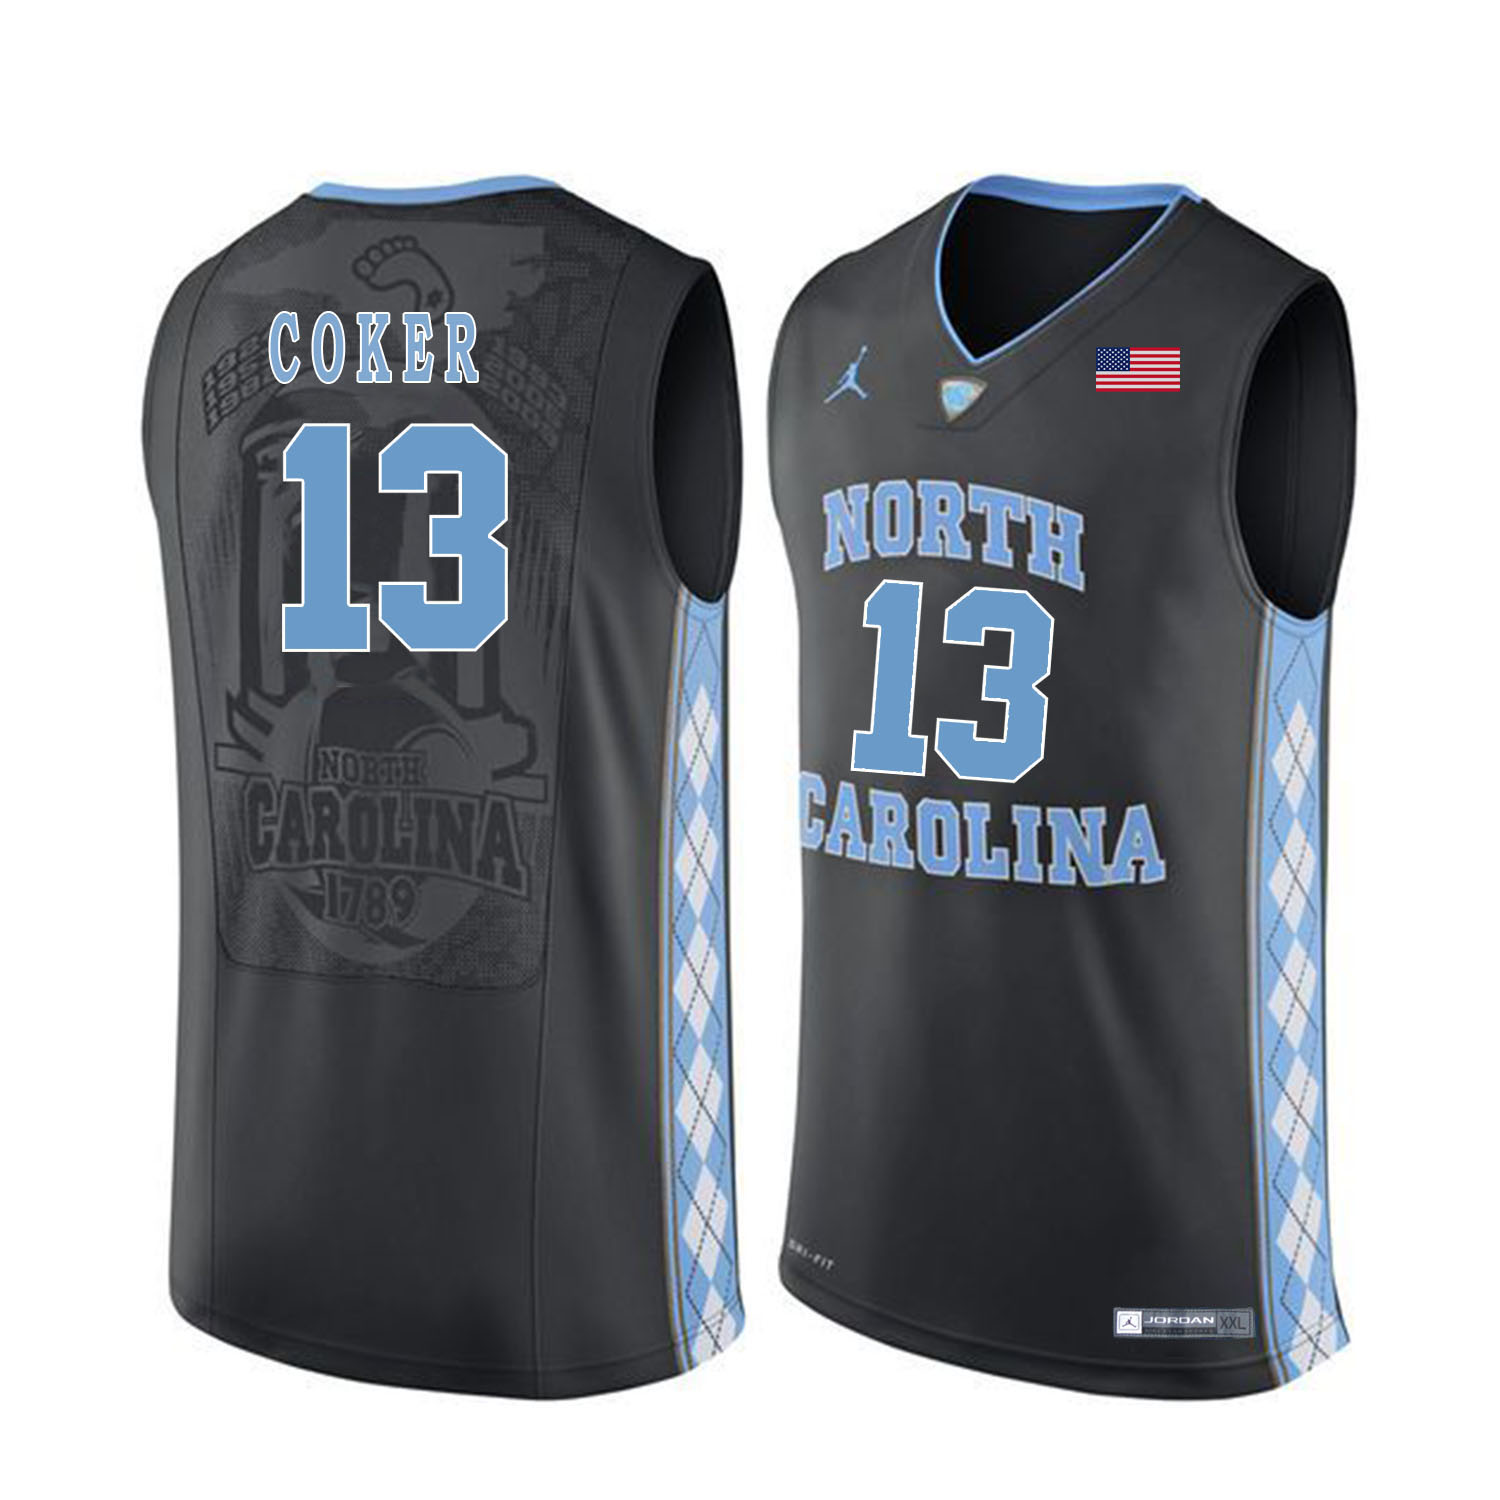 North Carolina Tar Heels 13 Kanler Coker Black College Basketball Jersey